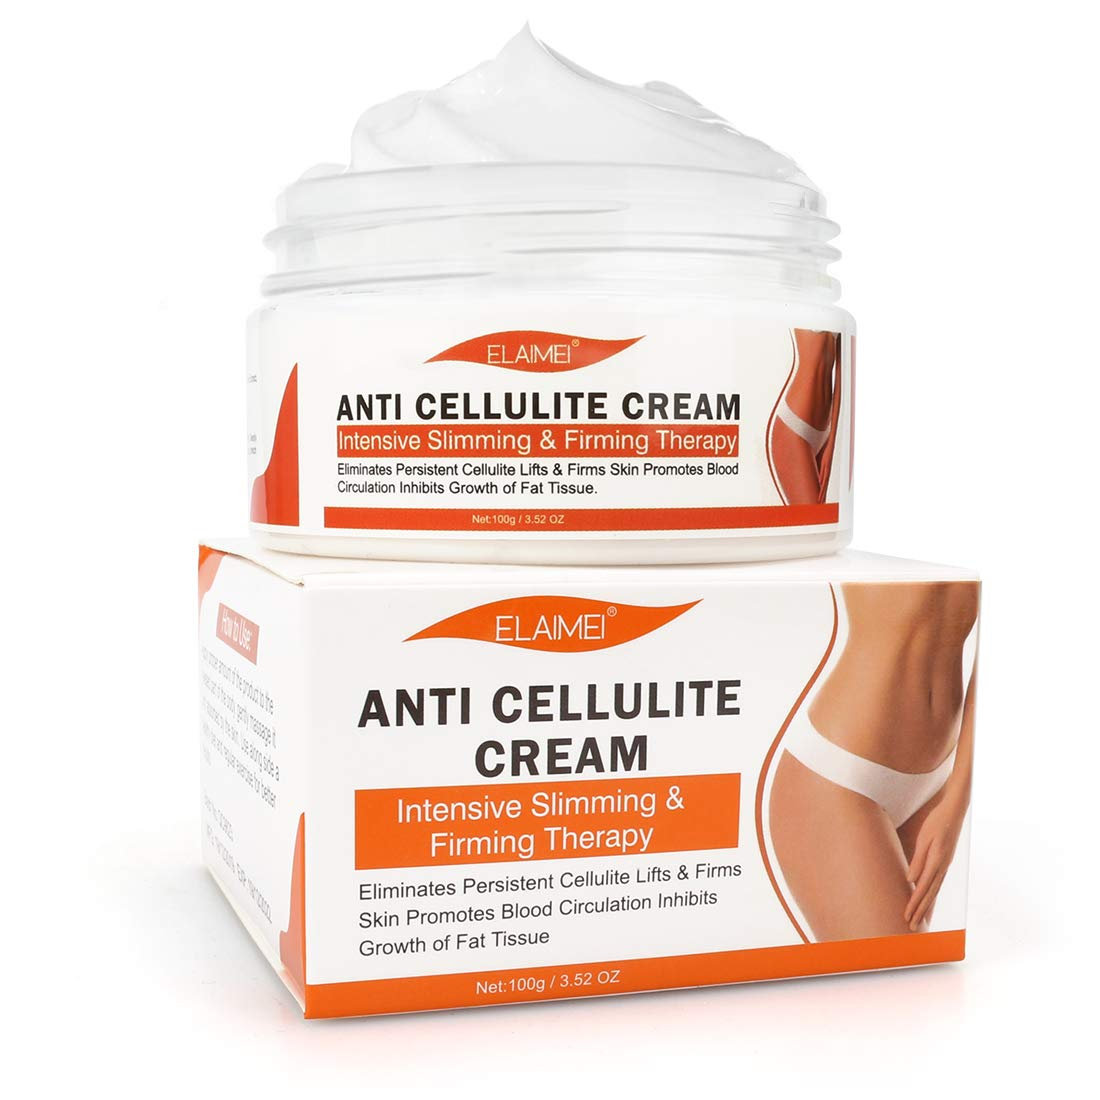 Anti Cellulite Cream, Slimming Cream, Hot Cream, Organic Body Slimming Cream, Natural Cellulite Treatment Cream for Thighs, Legs, Abdomen, Arms and Buttocks - Deep Tissue Massage & Muscle Relaxer